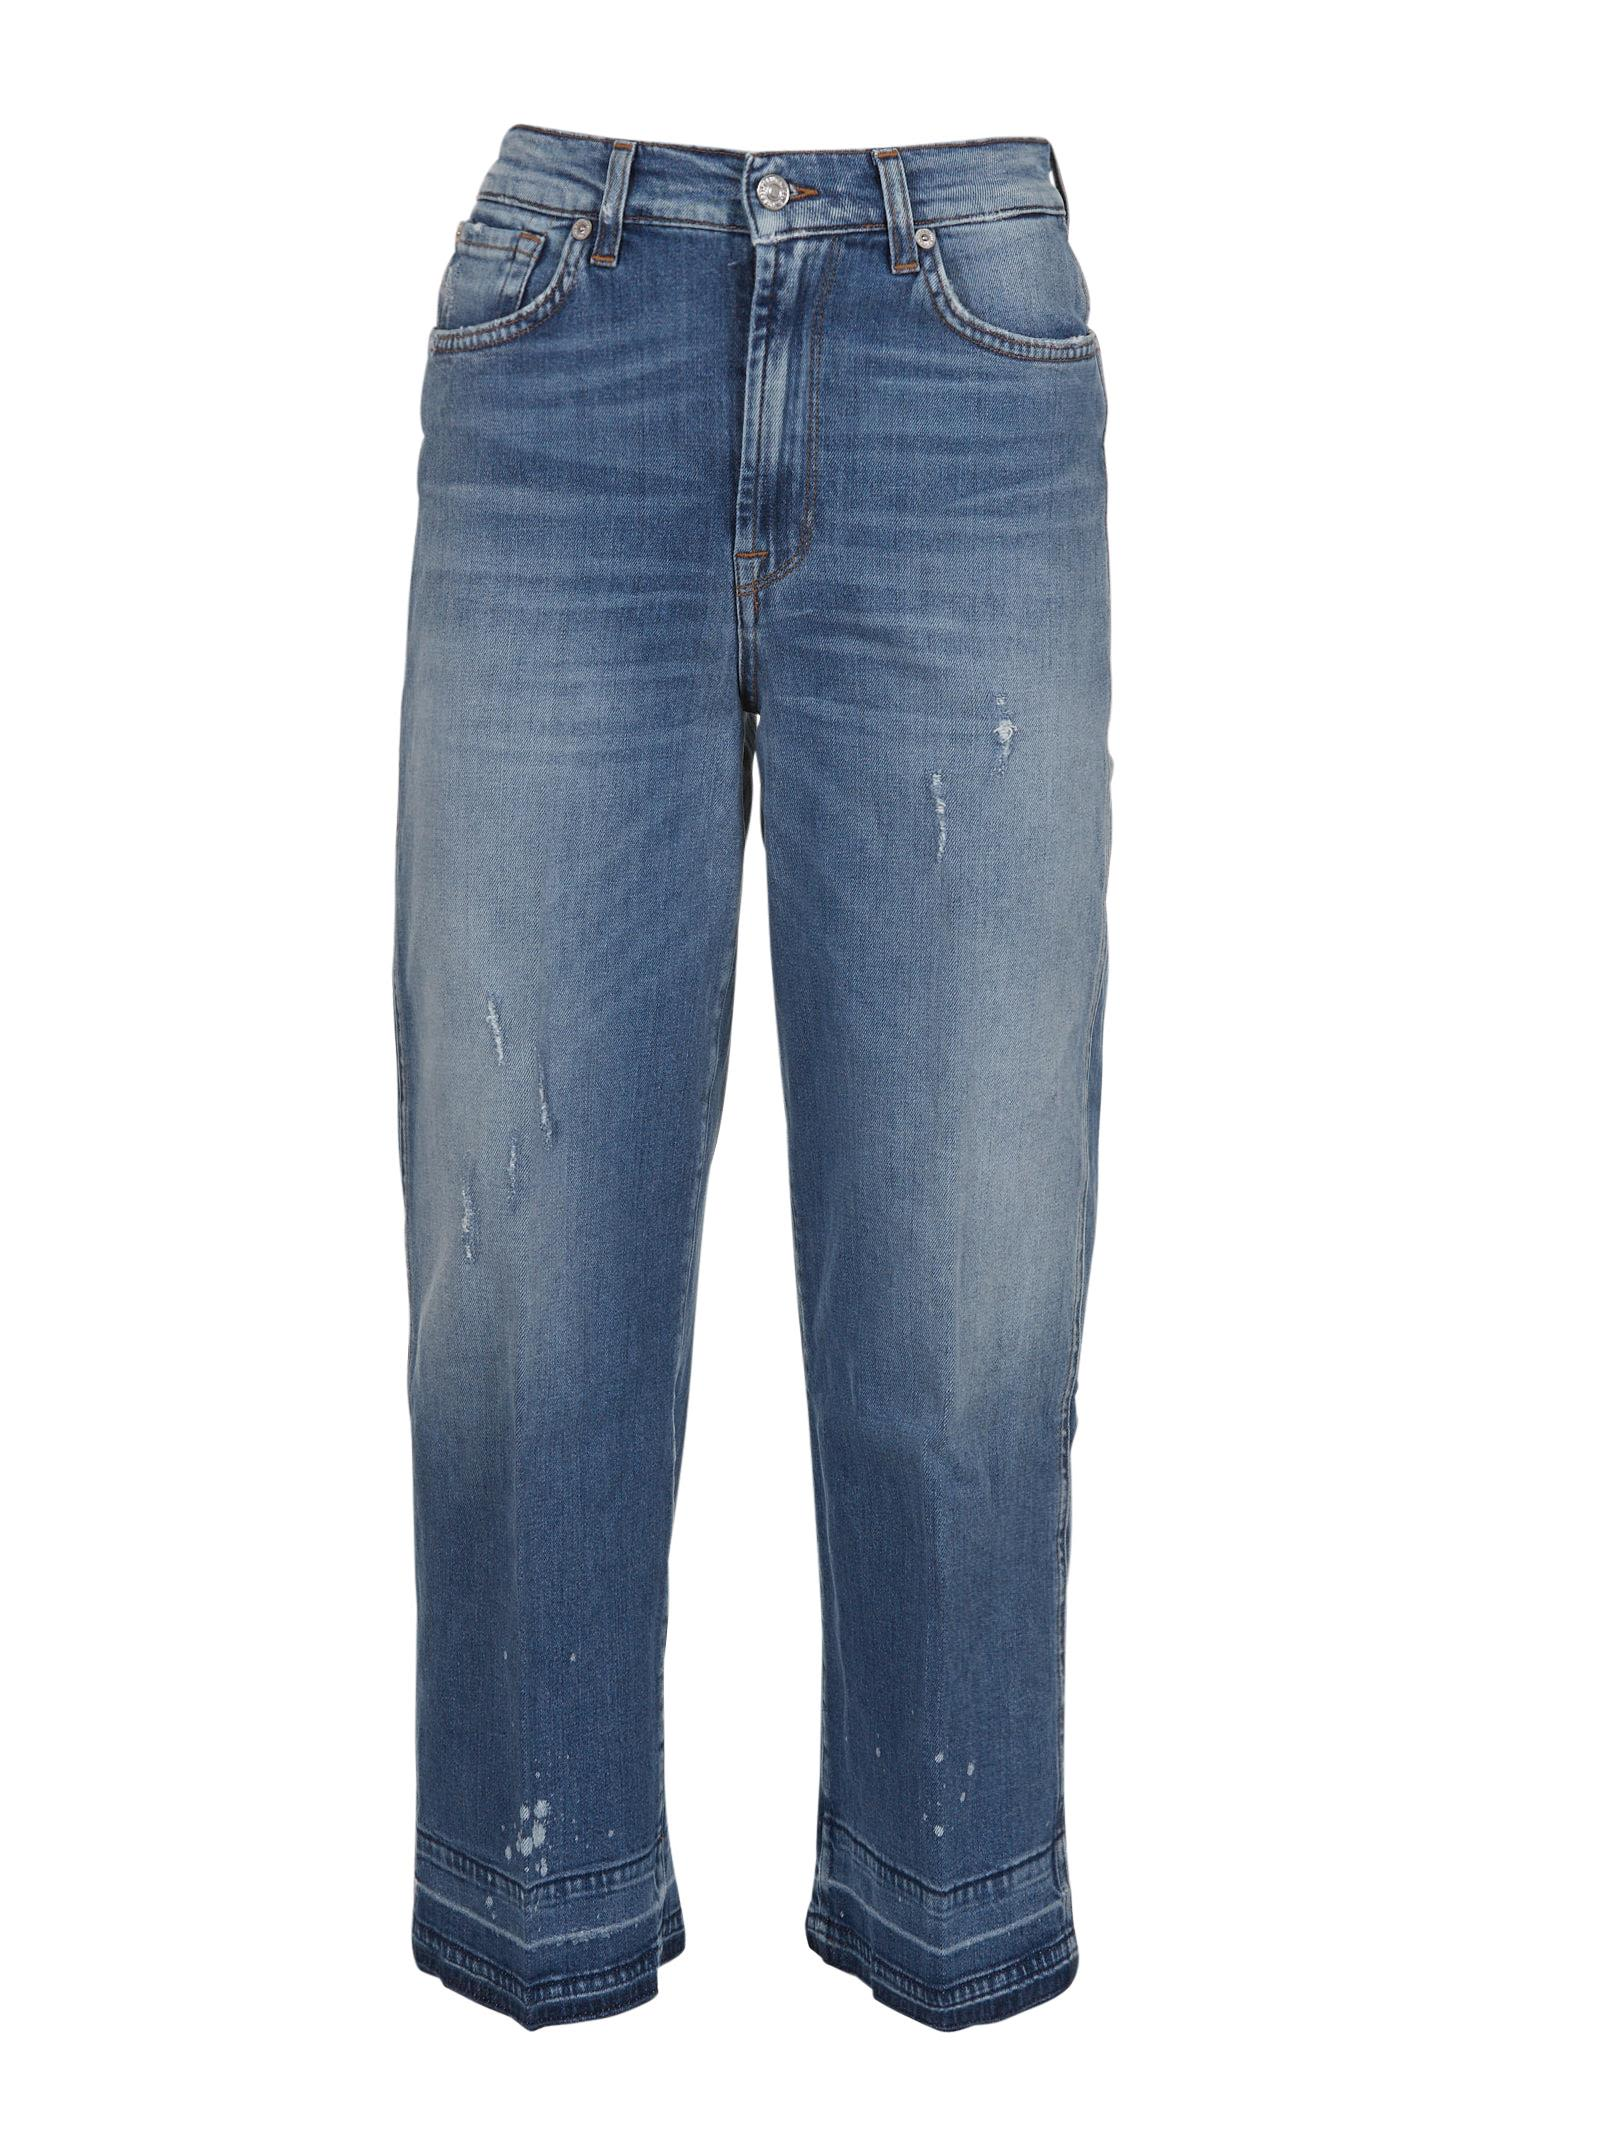 7 For All Mankind Marnie Unrolled Jeans